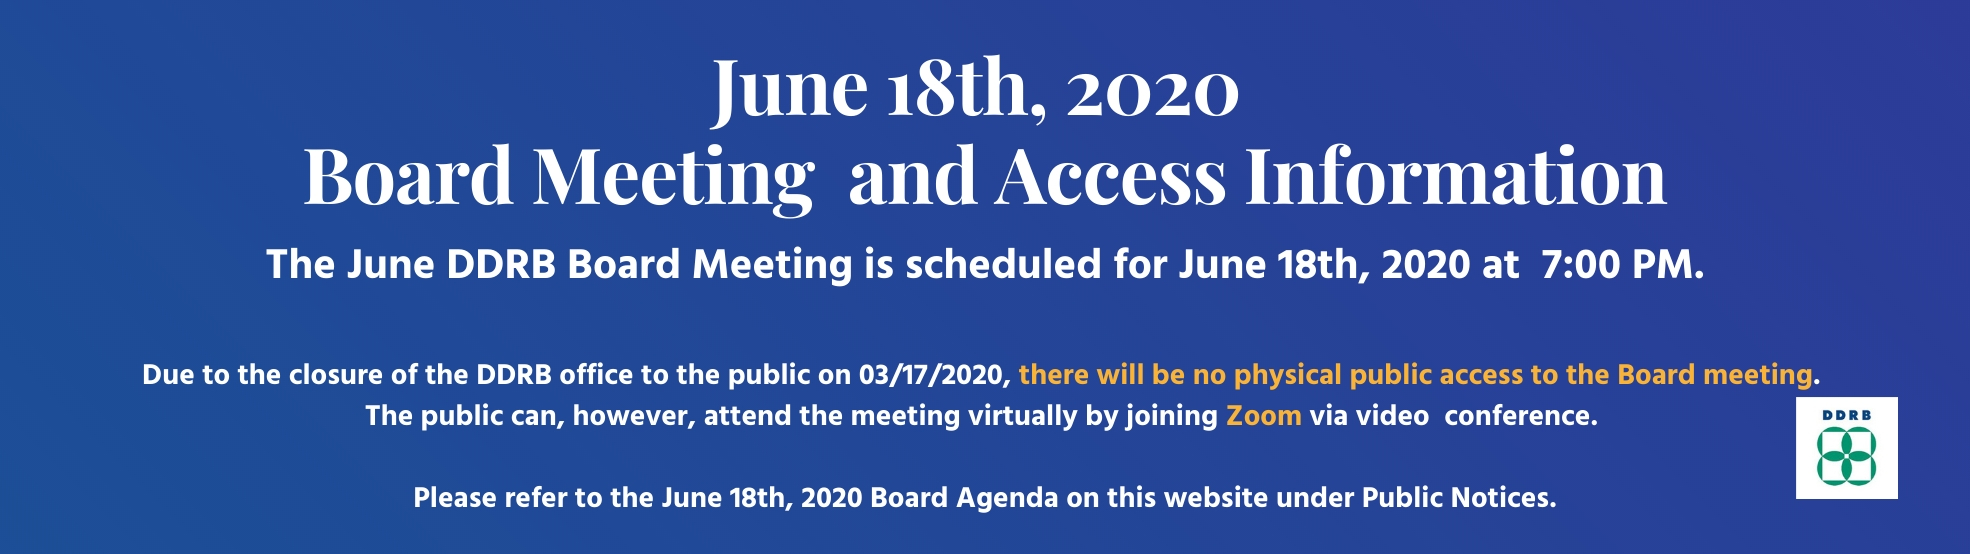 DDRB June 18th Board Meeting Website Notice V2